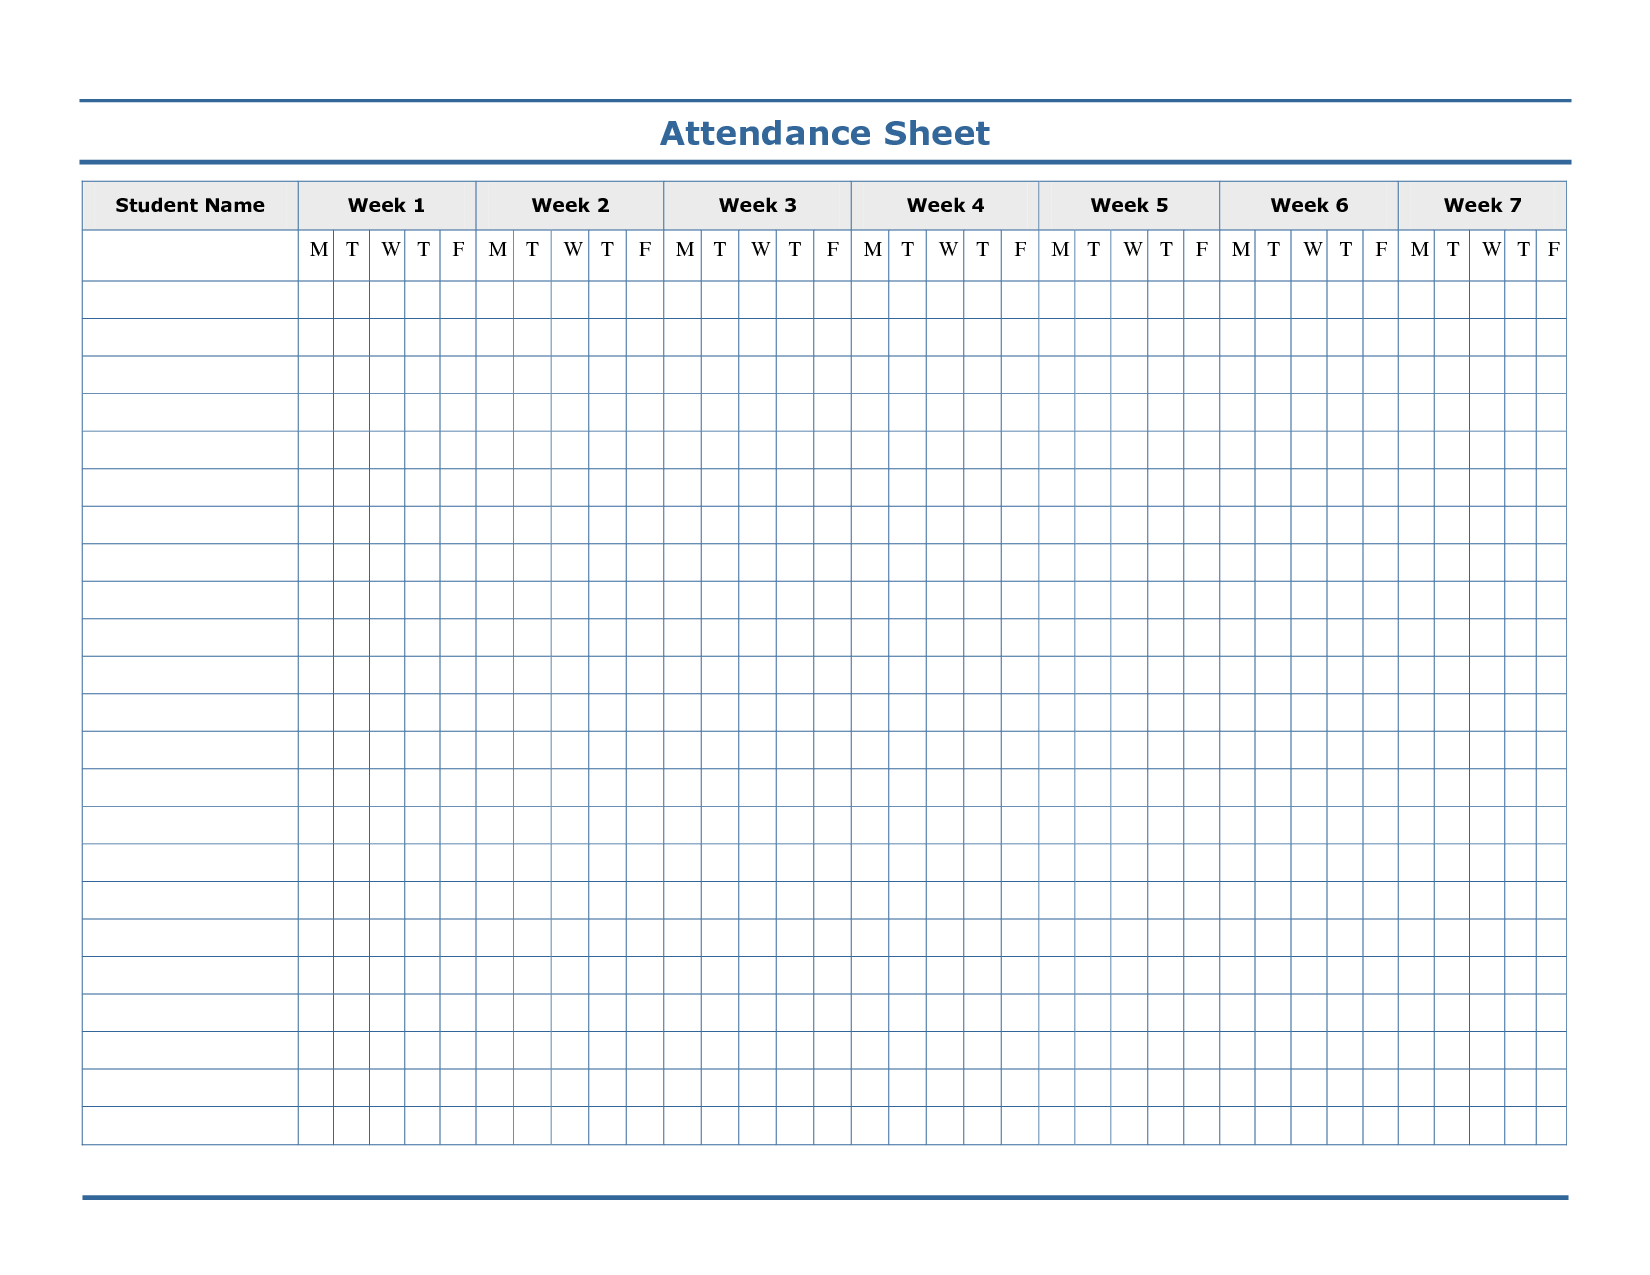 Attendance Template Free  Google Search  Ideas For Kids Jiu